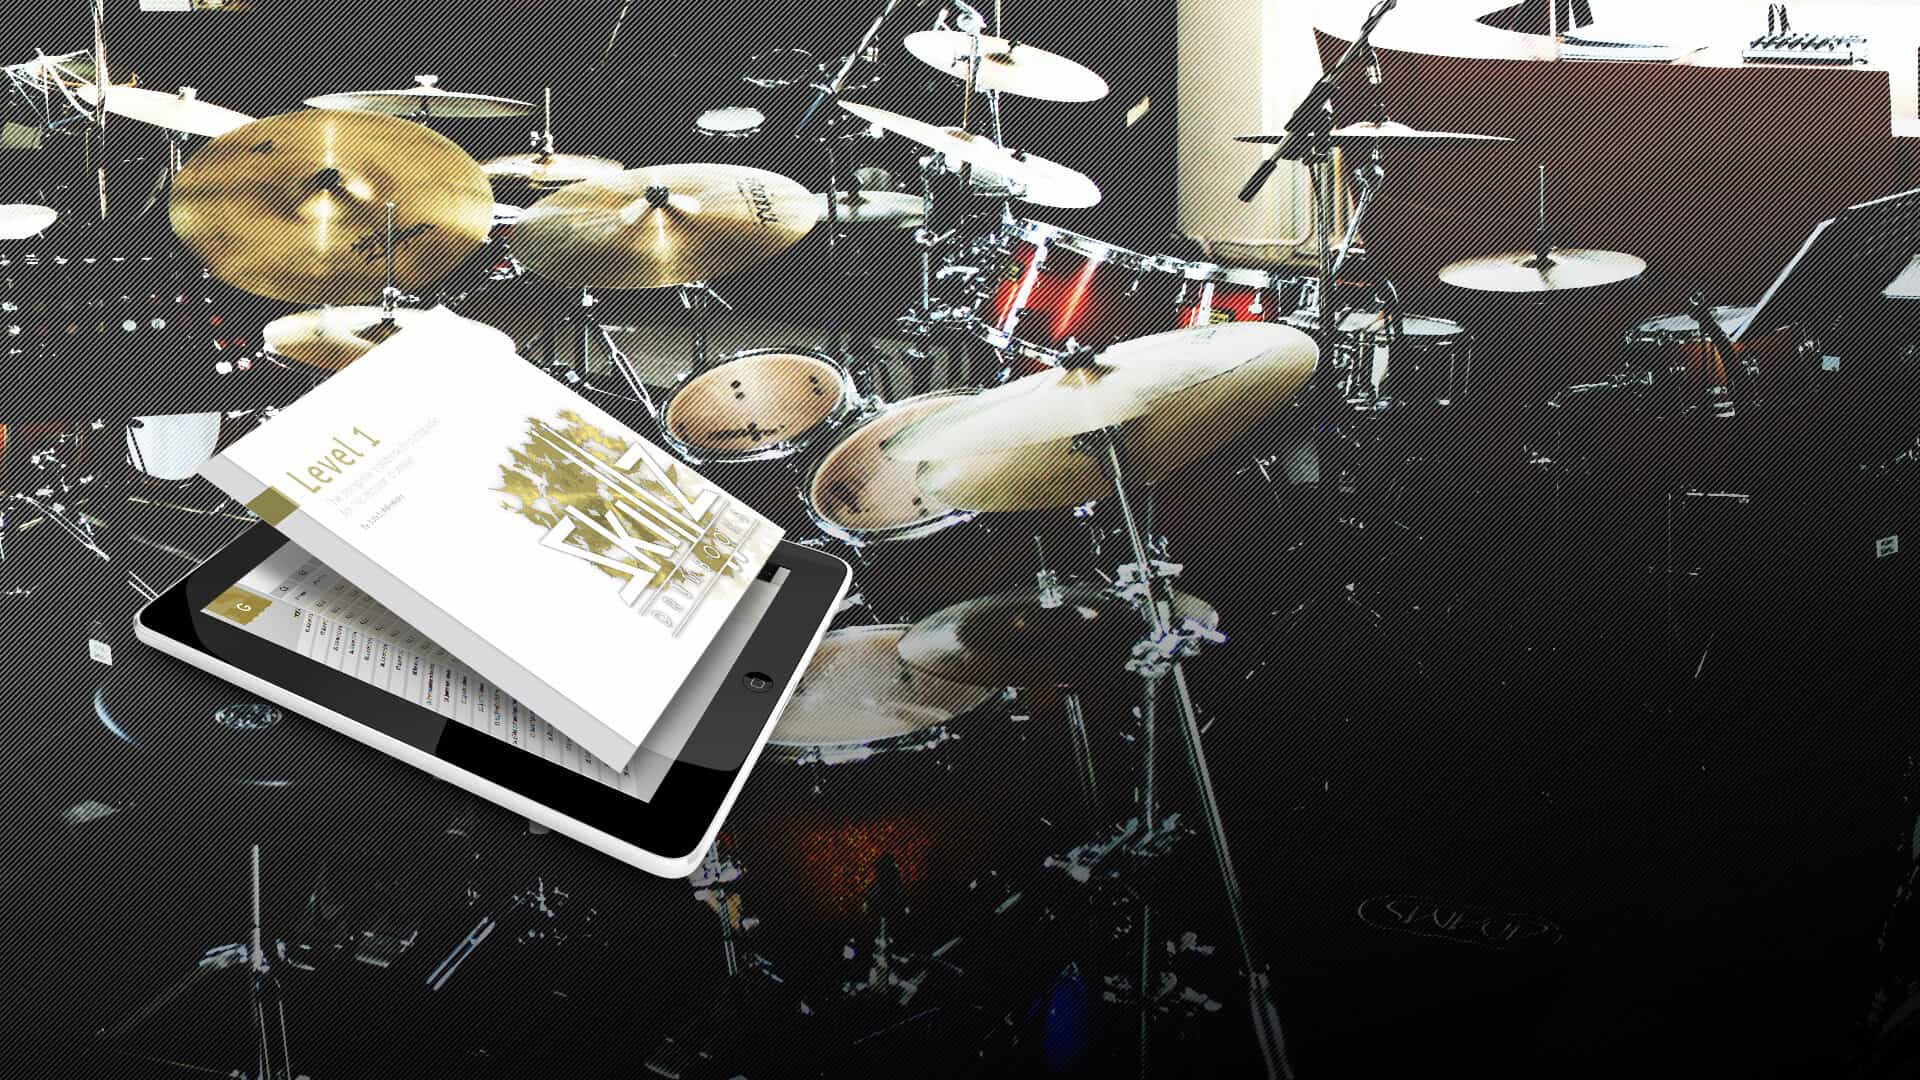 Drum Encyclopedia Level 1 in Drum Studio background Skillz Drum Lessons